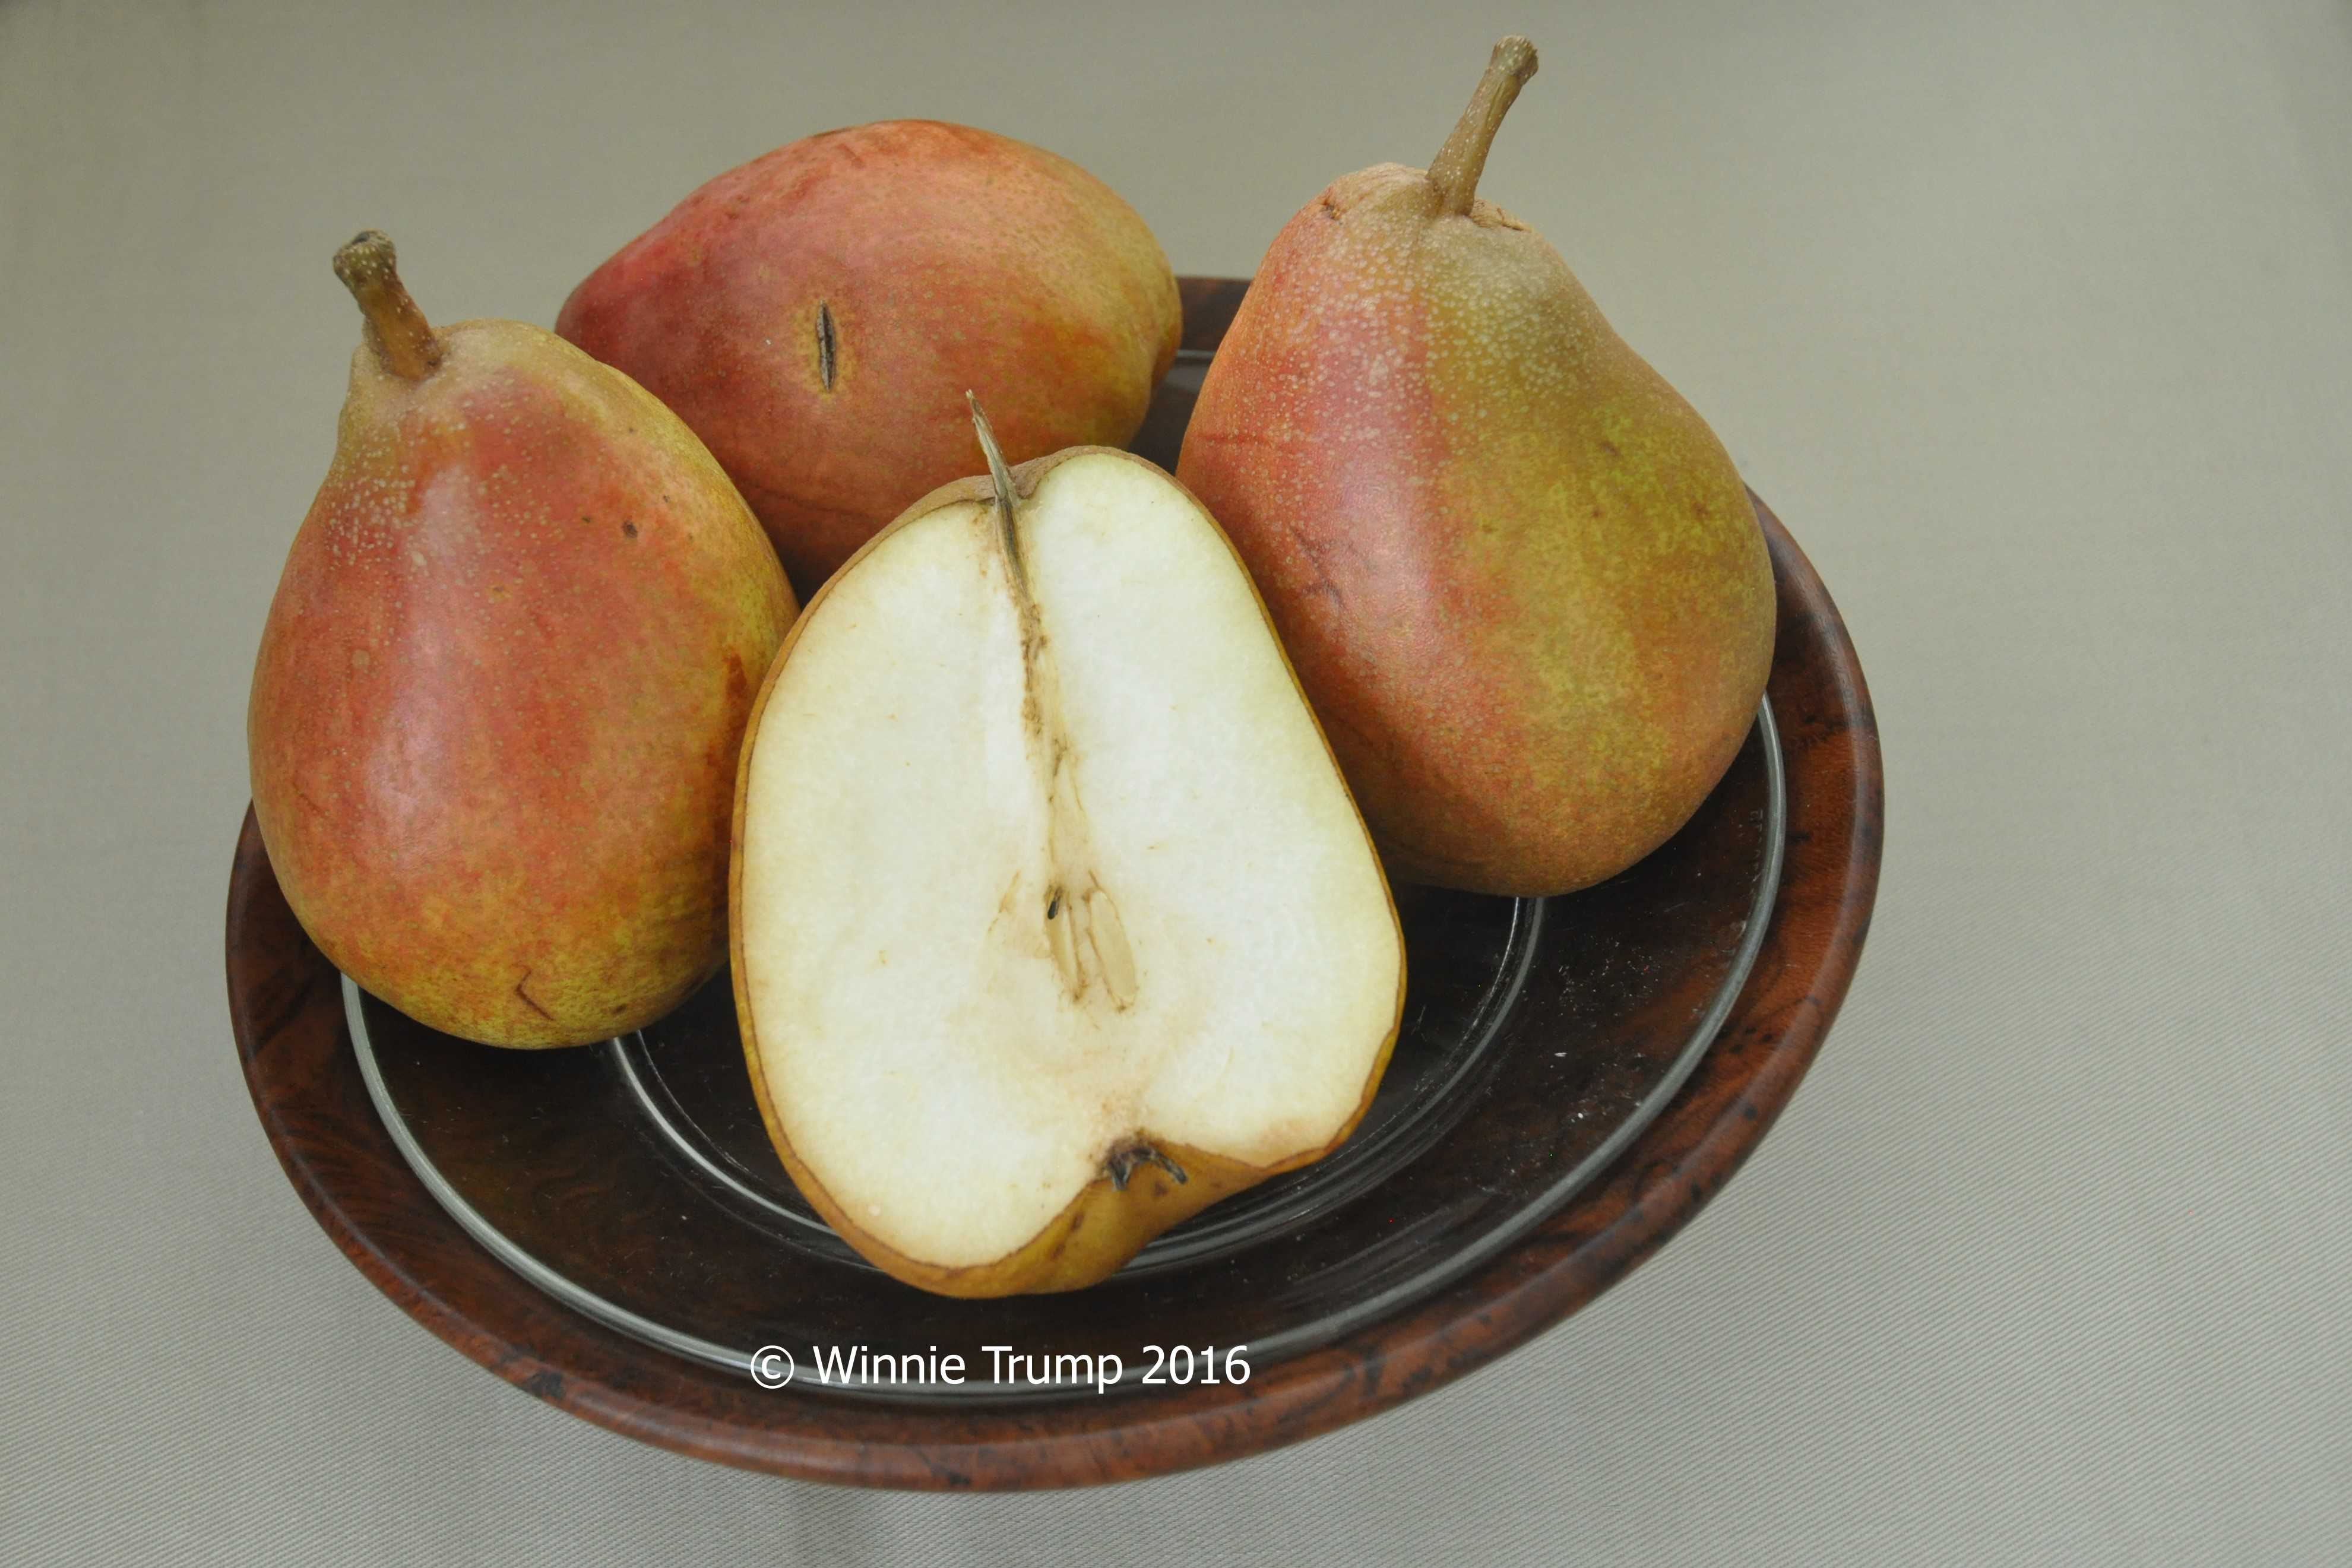 Bowl of Pears